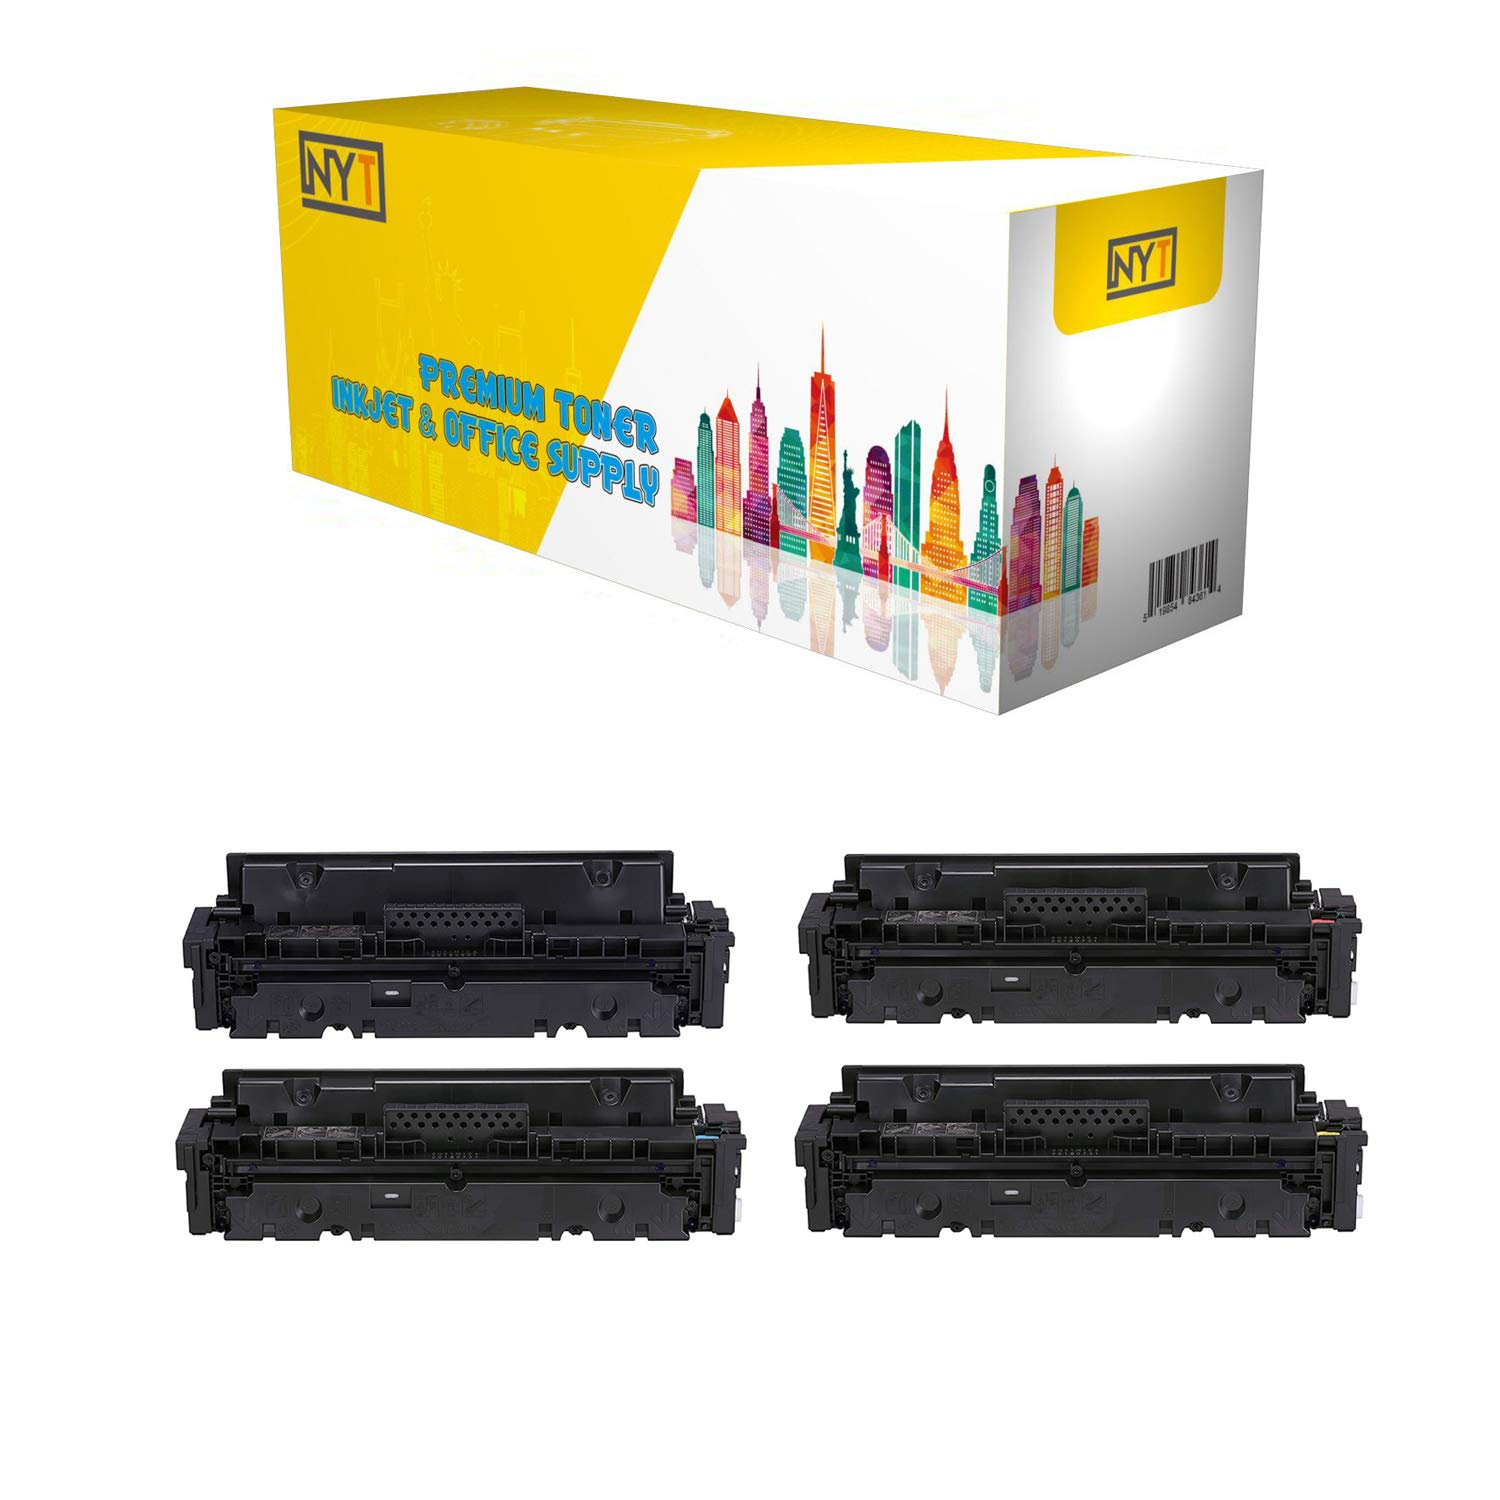 1 Cyan, 1 Magenta, 1 Yellow, 3-Pack Speedy Inks Remanufactured Toner Cartridge Replacement for HP 130A